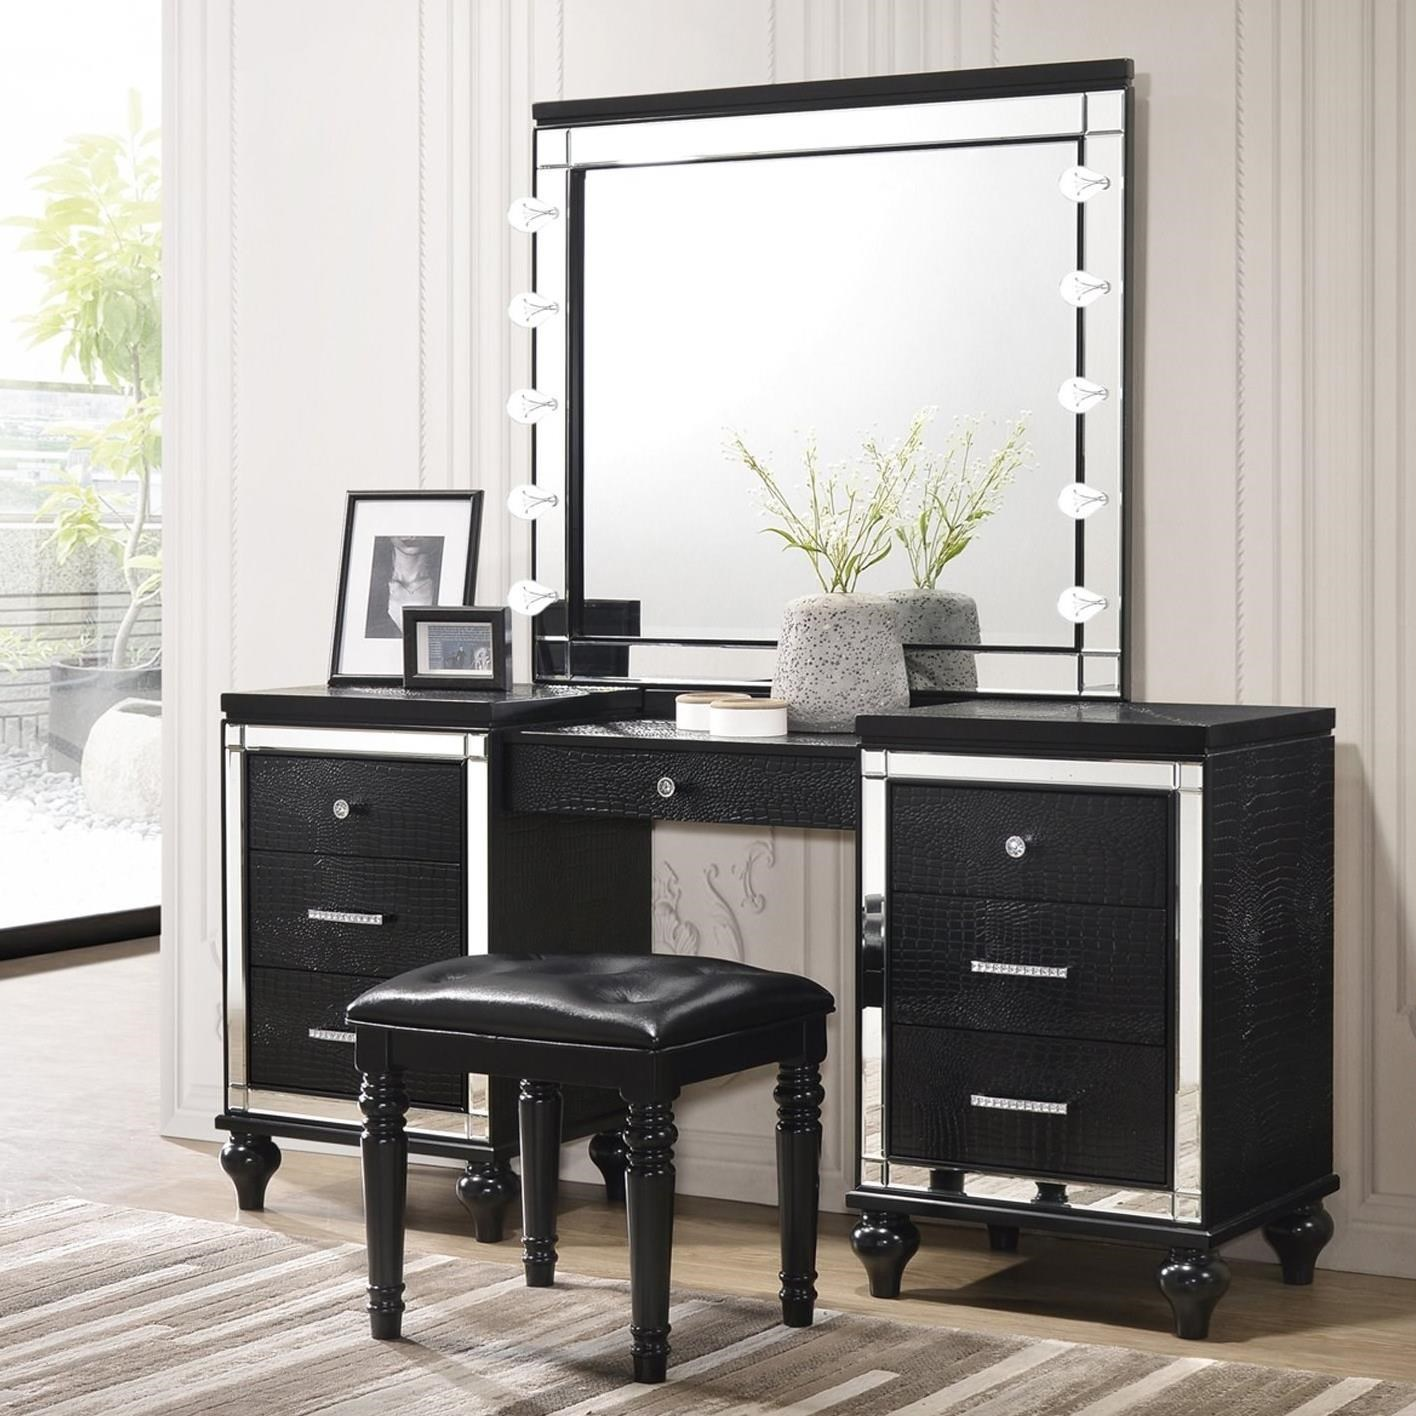 New Classic Valentino Vanity Lighted Mirror And Stool Set Furniture Superstore Rochester Mn Vanities Vanity Sets